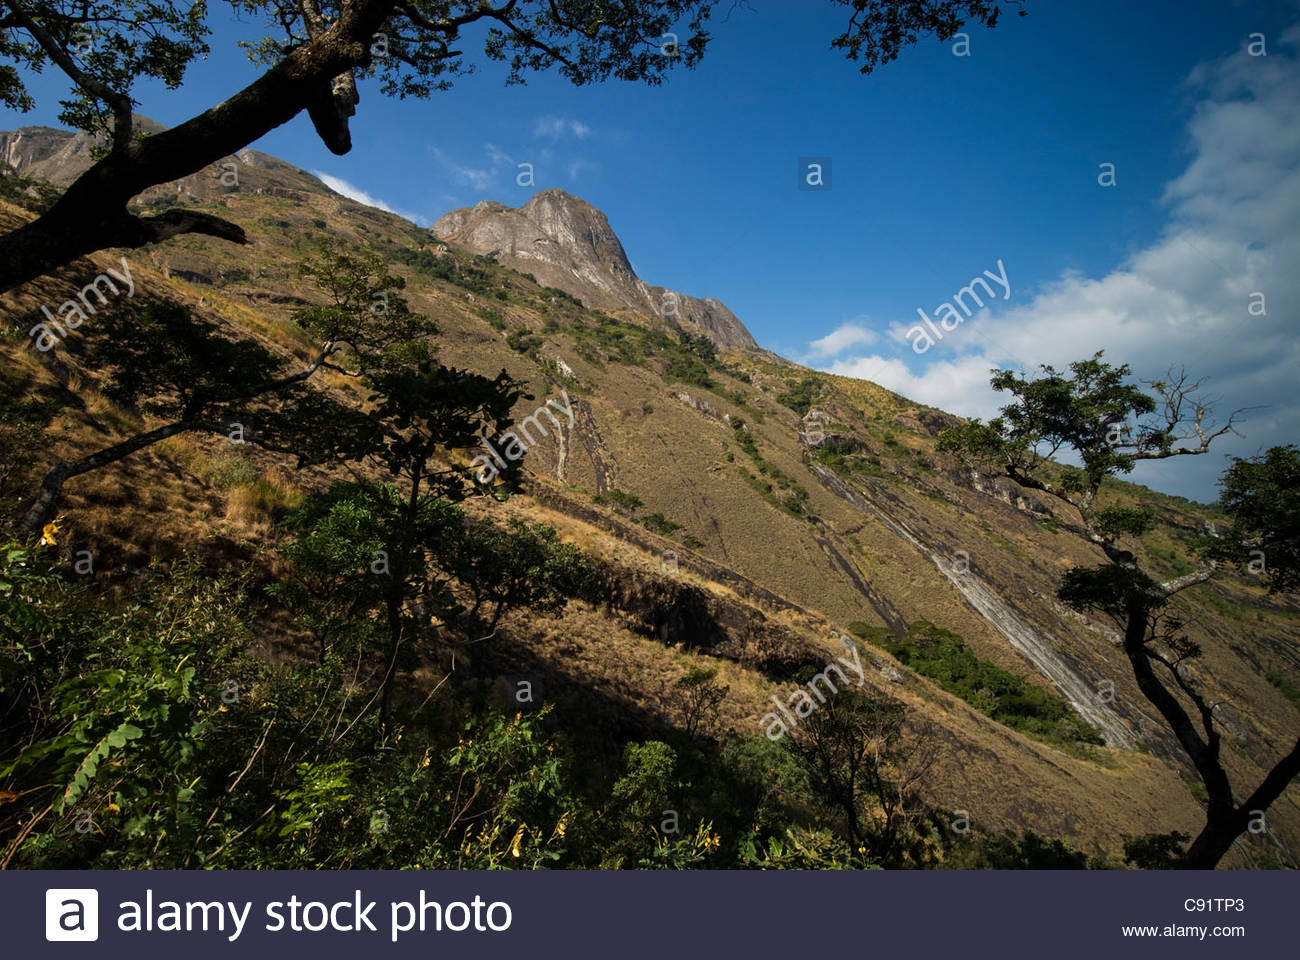 Mulanje Mountain Stock Photos Mulanje Mountain Stock Images   Alamy 1300x960